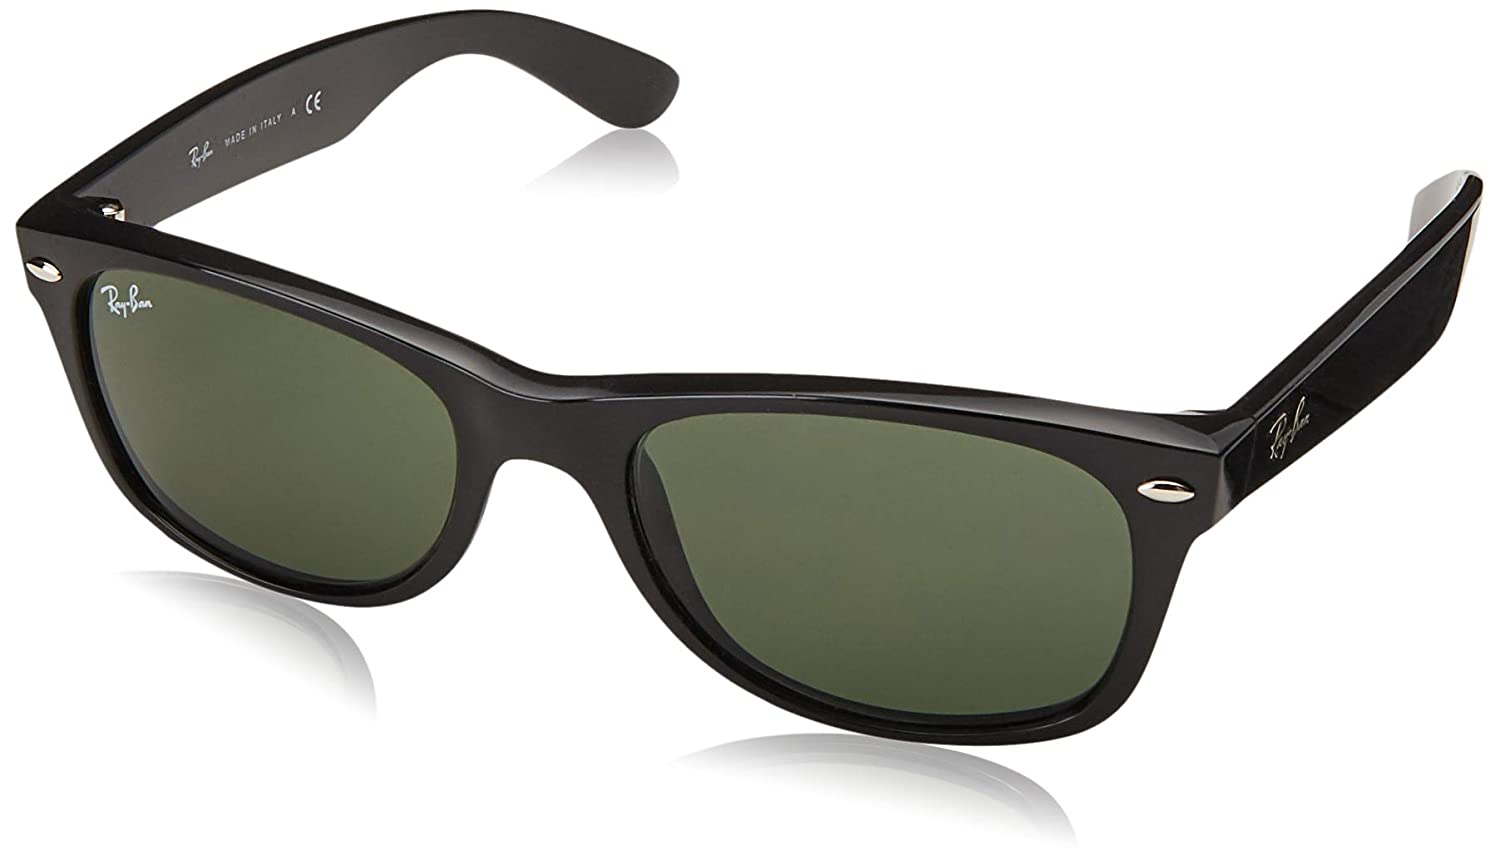 Ray-Ban RB2132 New Wayfarer Mirrored Sunglasses